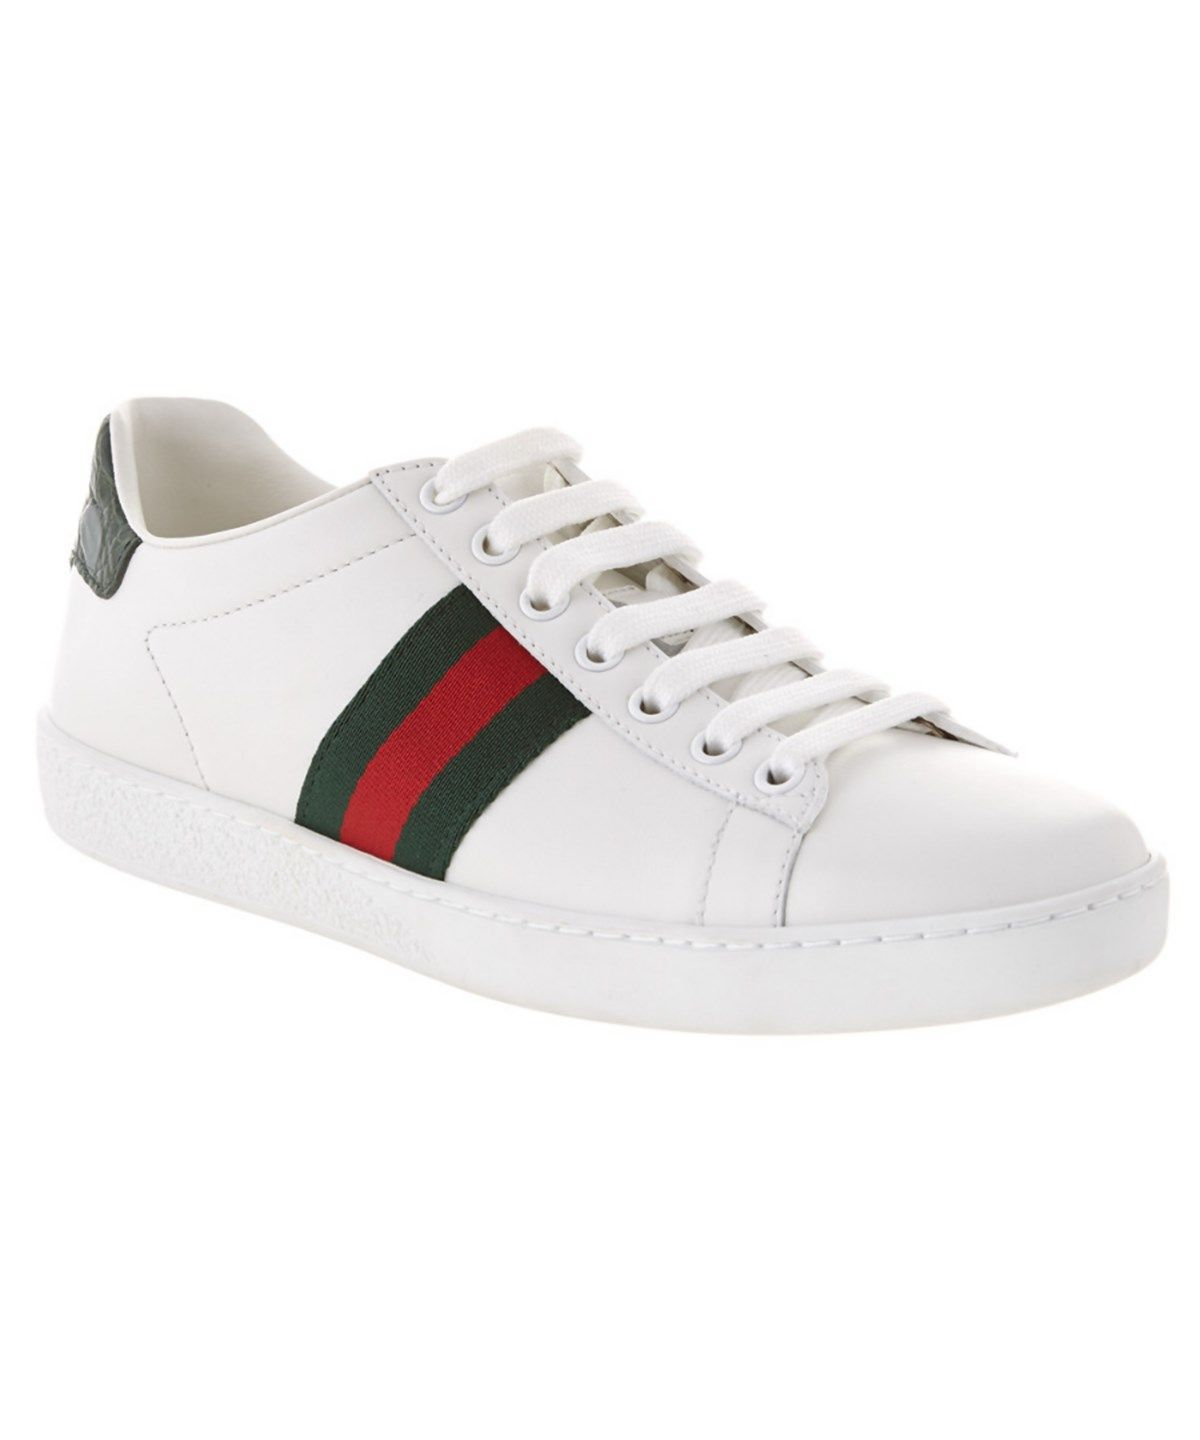 b983a04ba GUCCI GUCCI ACE LEATHER LOW TOP SNEAKER. #gucci #shoes #shoes ...